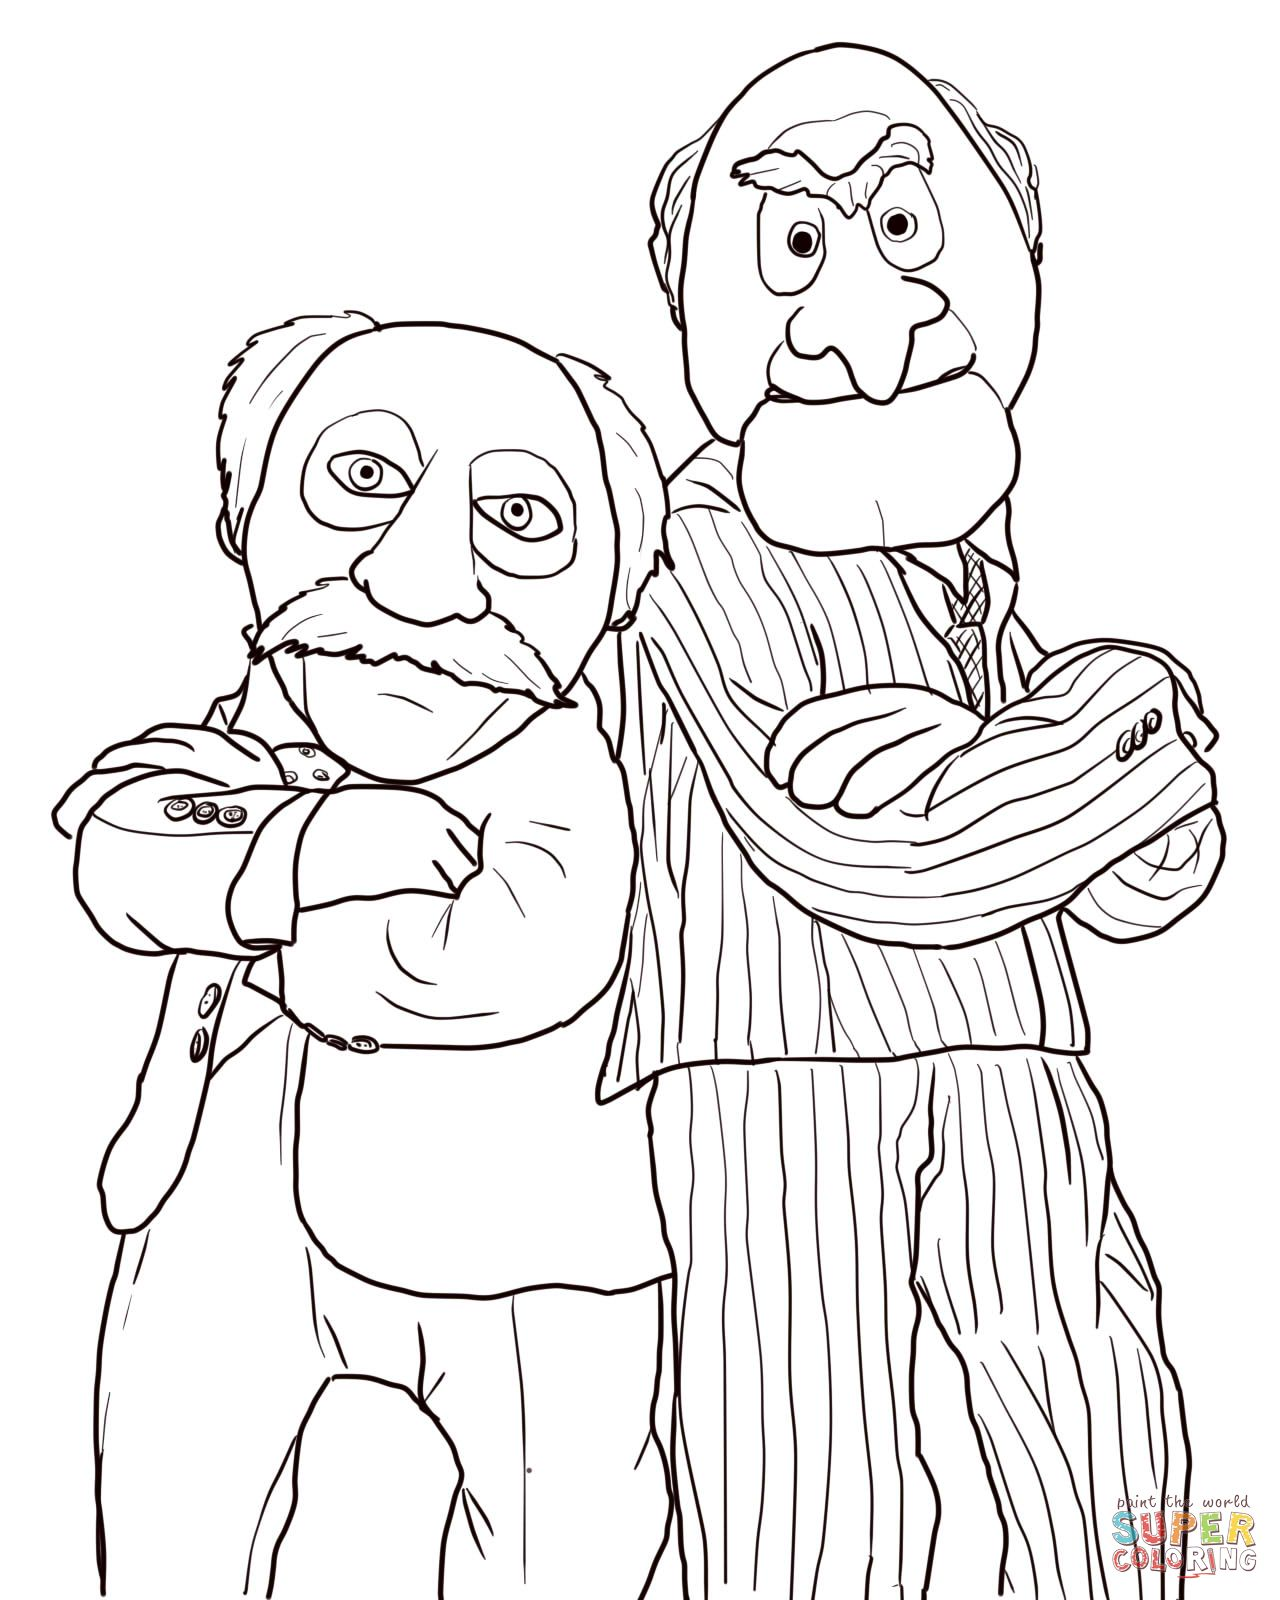 statler and waldorf coloring pages 5 colouring pictures muppet